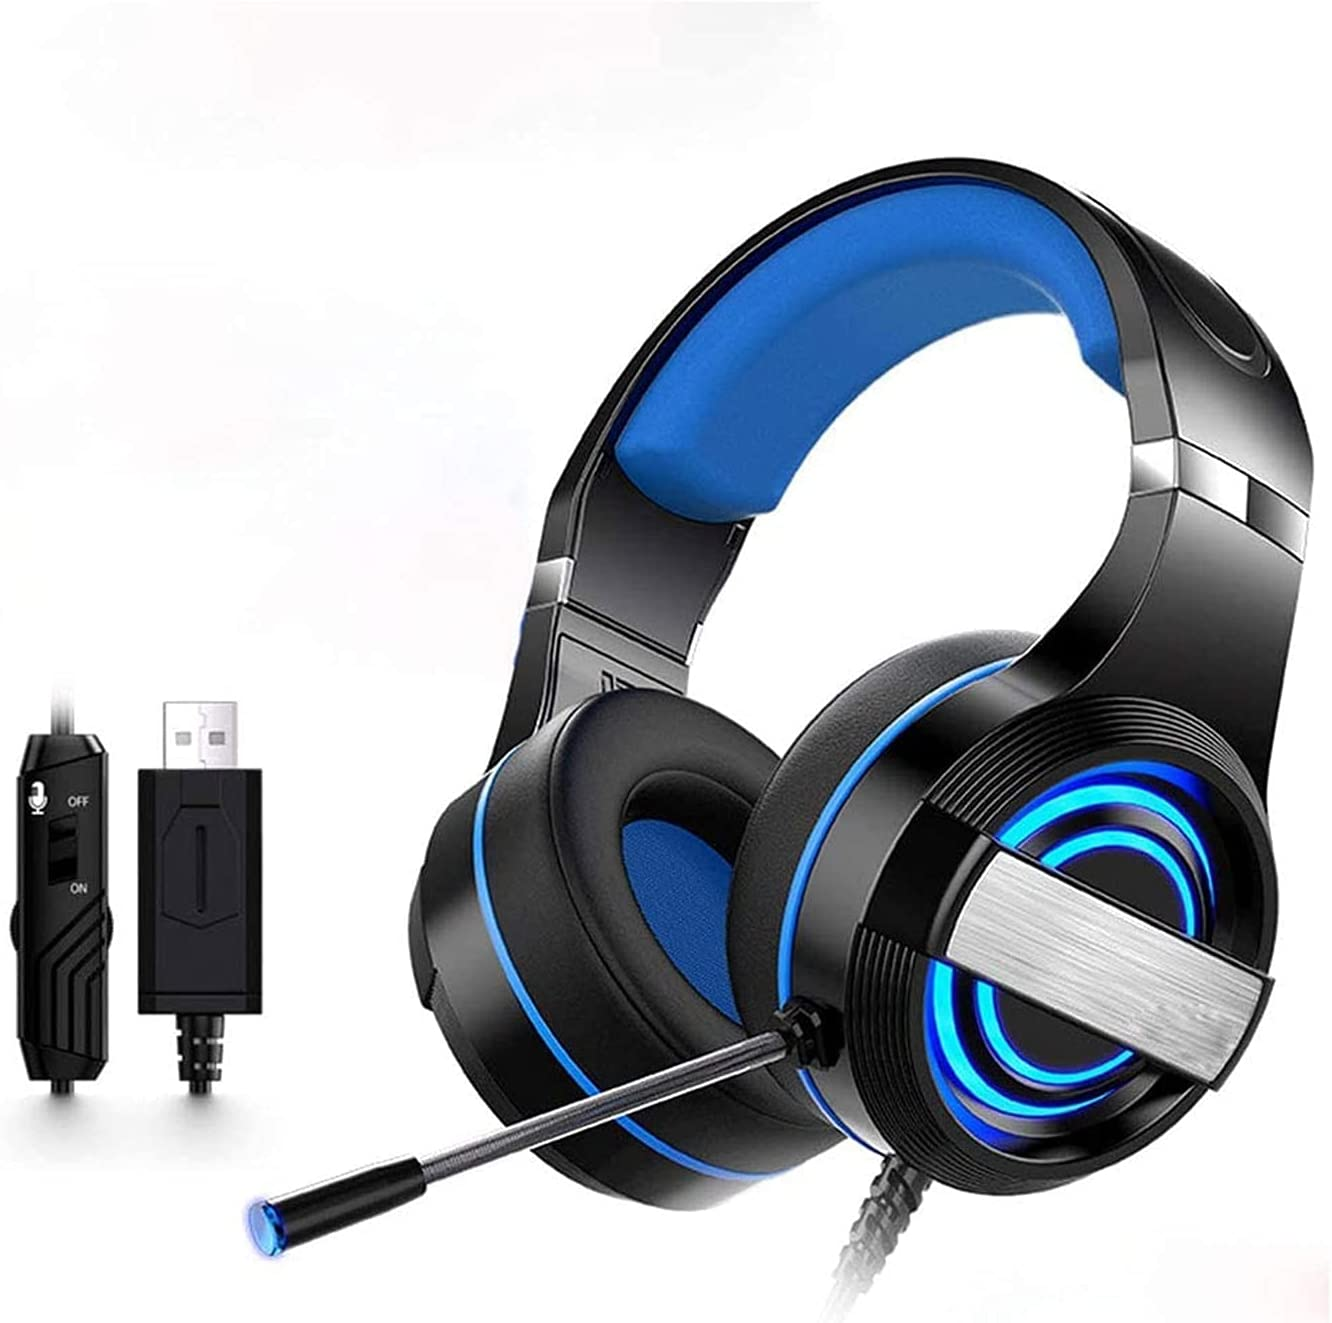 Leo1996 Challenge the lowest price of Japan ☆ Gaming Headset for Sacramento Mall Surround Gamin Noise Cancelling Sound